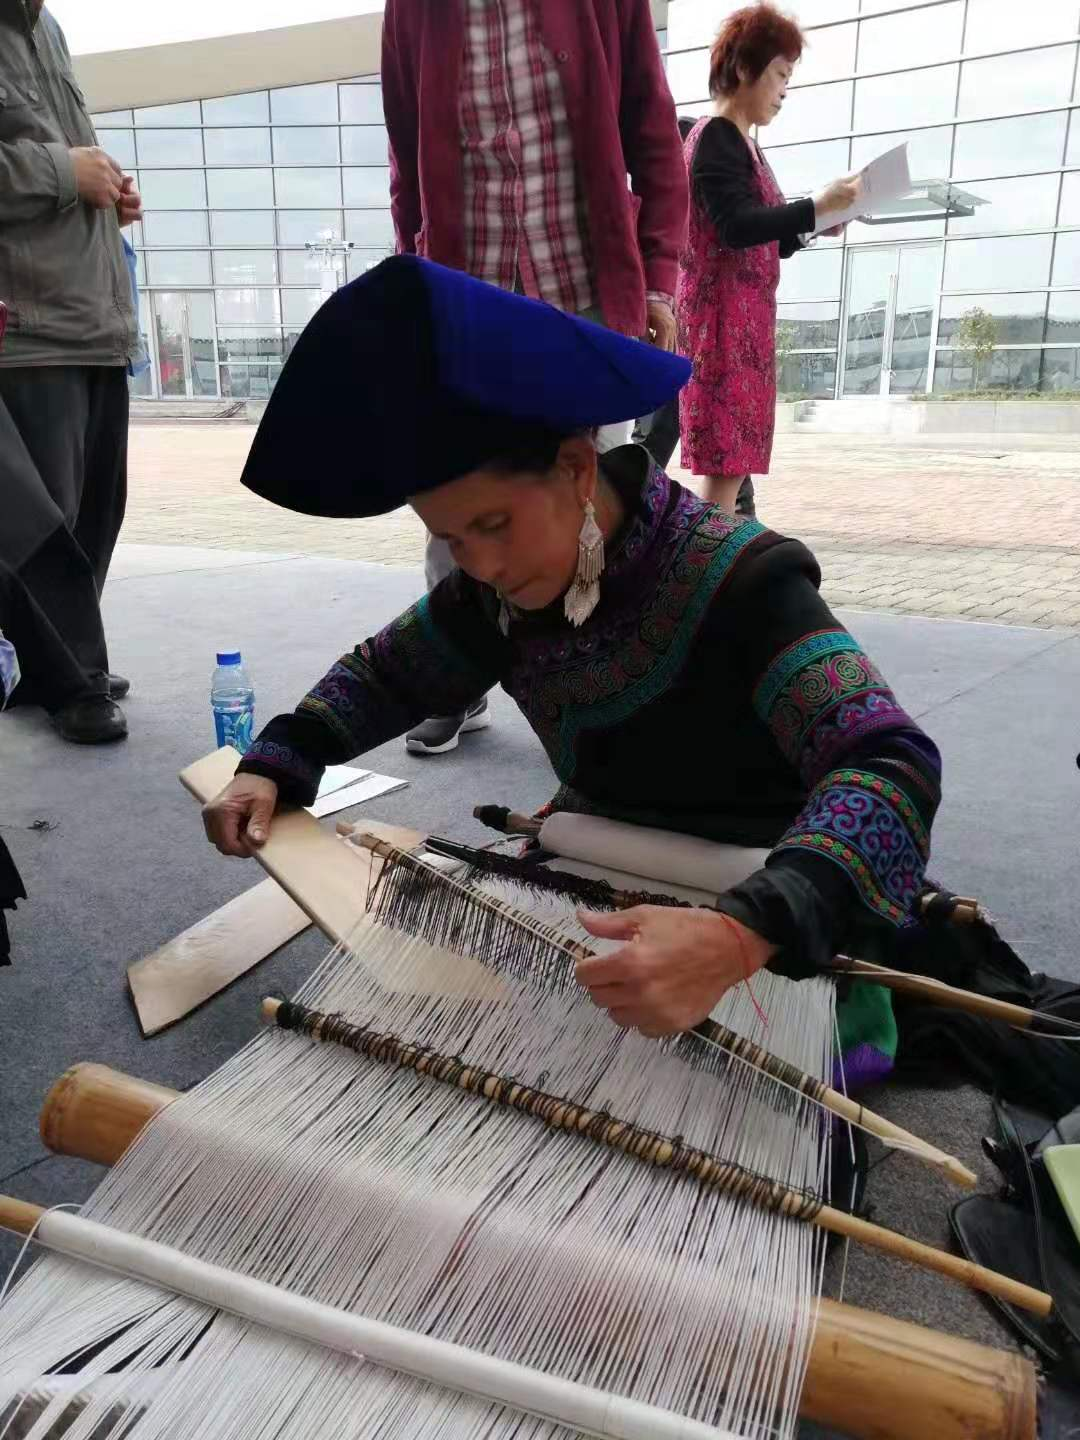 The Seventh Intangible Cultural Heritage Festival